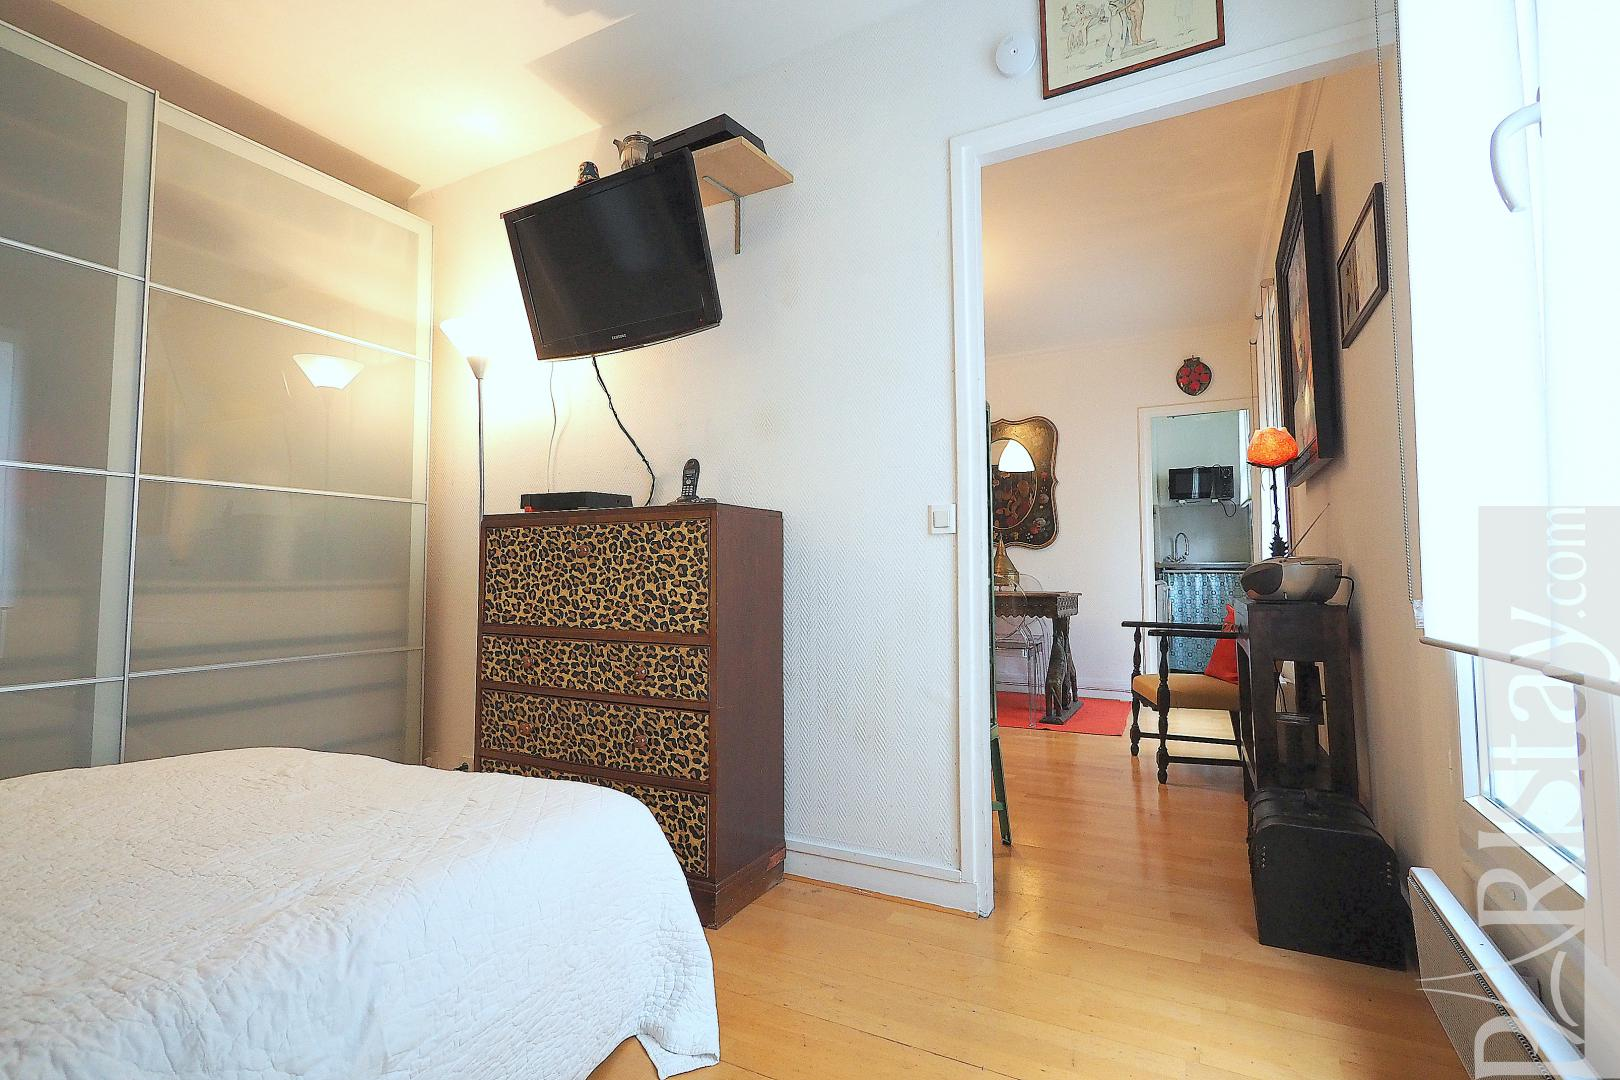 100 1 Bedroom Apartments In Atlanta Affordable 1 Bedroom Apartment For Rent Parc Monceau 75017